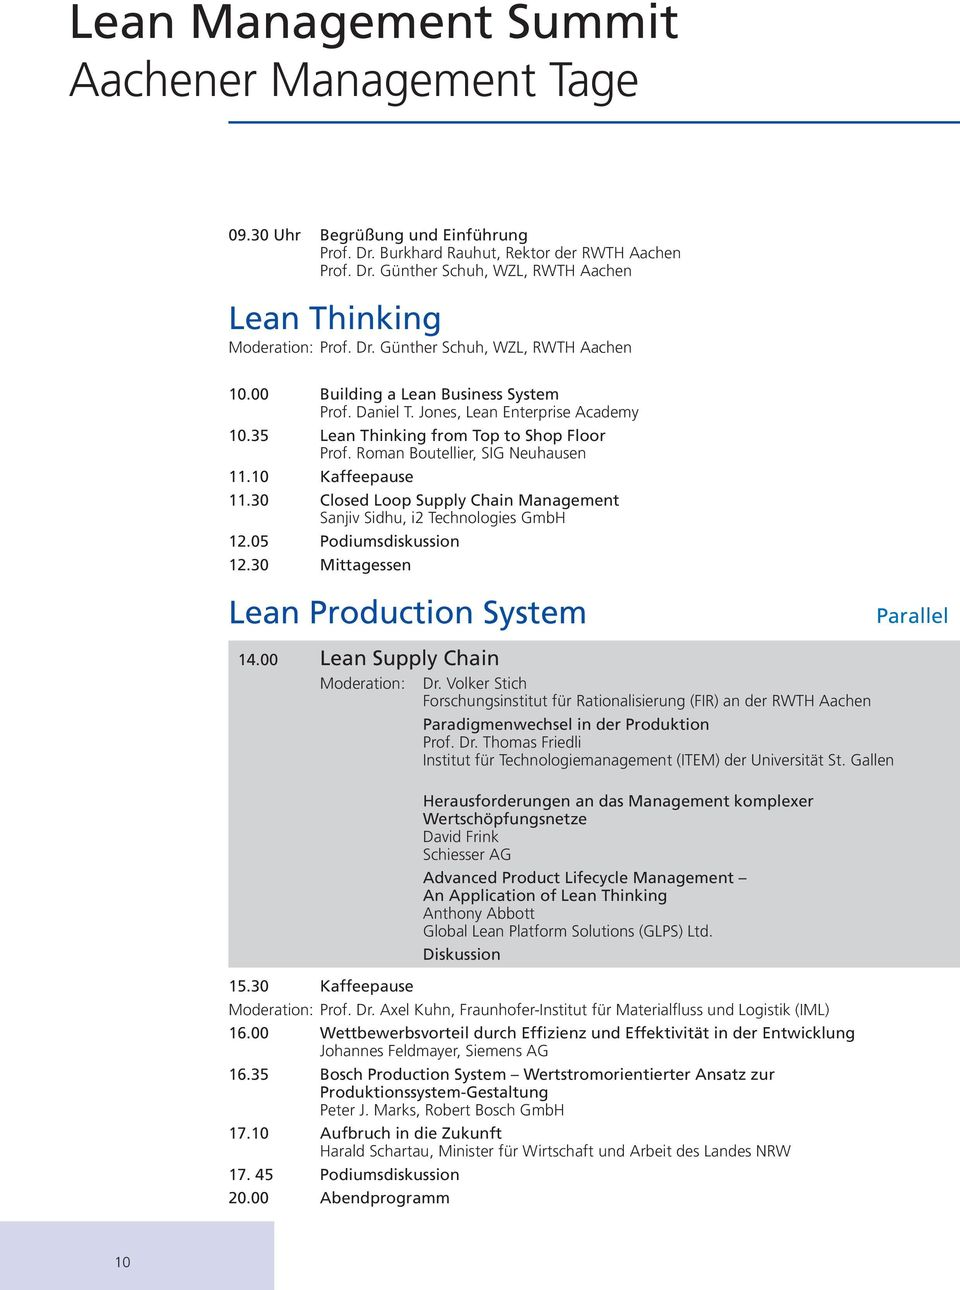 30 Closed Loop Supply Chain Management Sanjiv Sidhu, i2 Technologies GmbH 12.05 Podiumsdiskussion 12.30 Mittagessen Lean Production System 14.00 Lean Supply Chain Moderation: Dr.